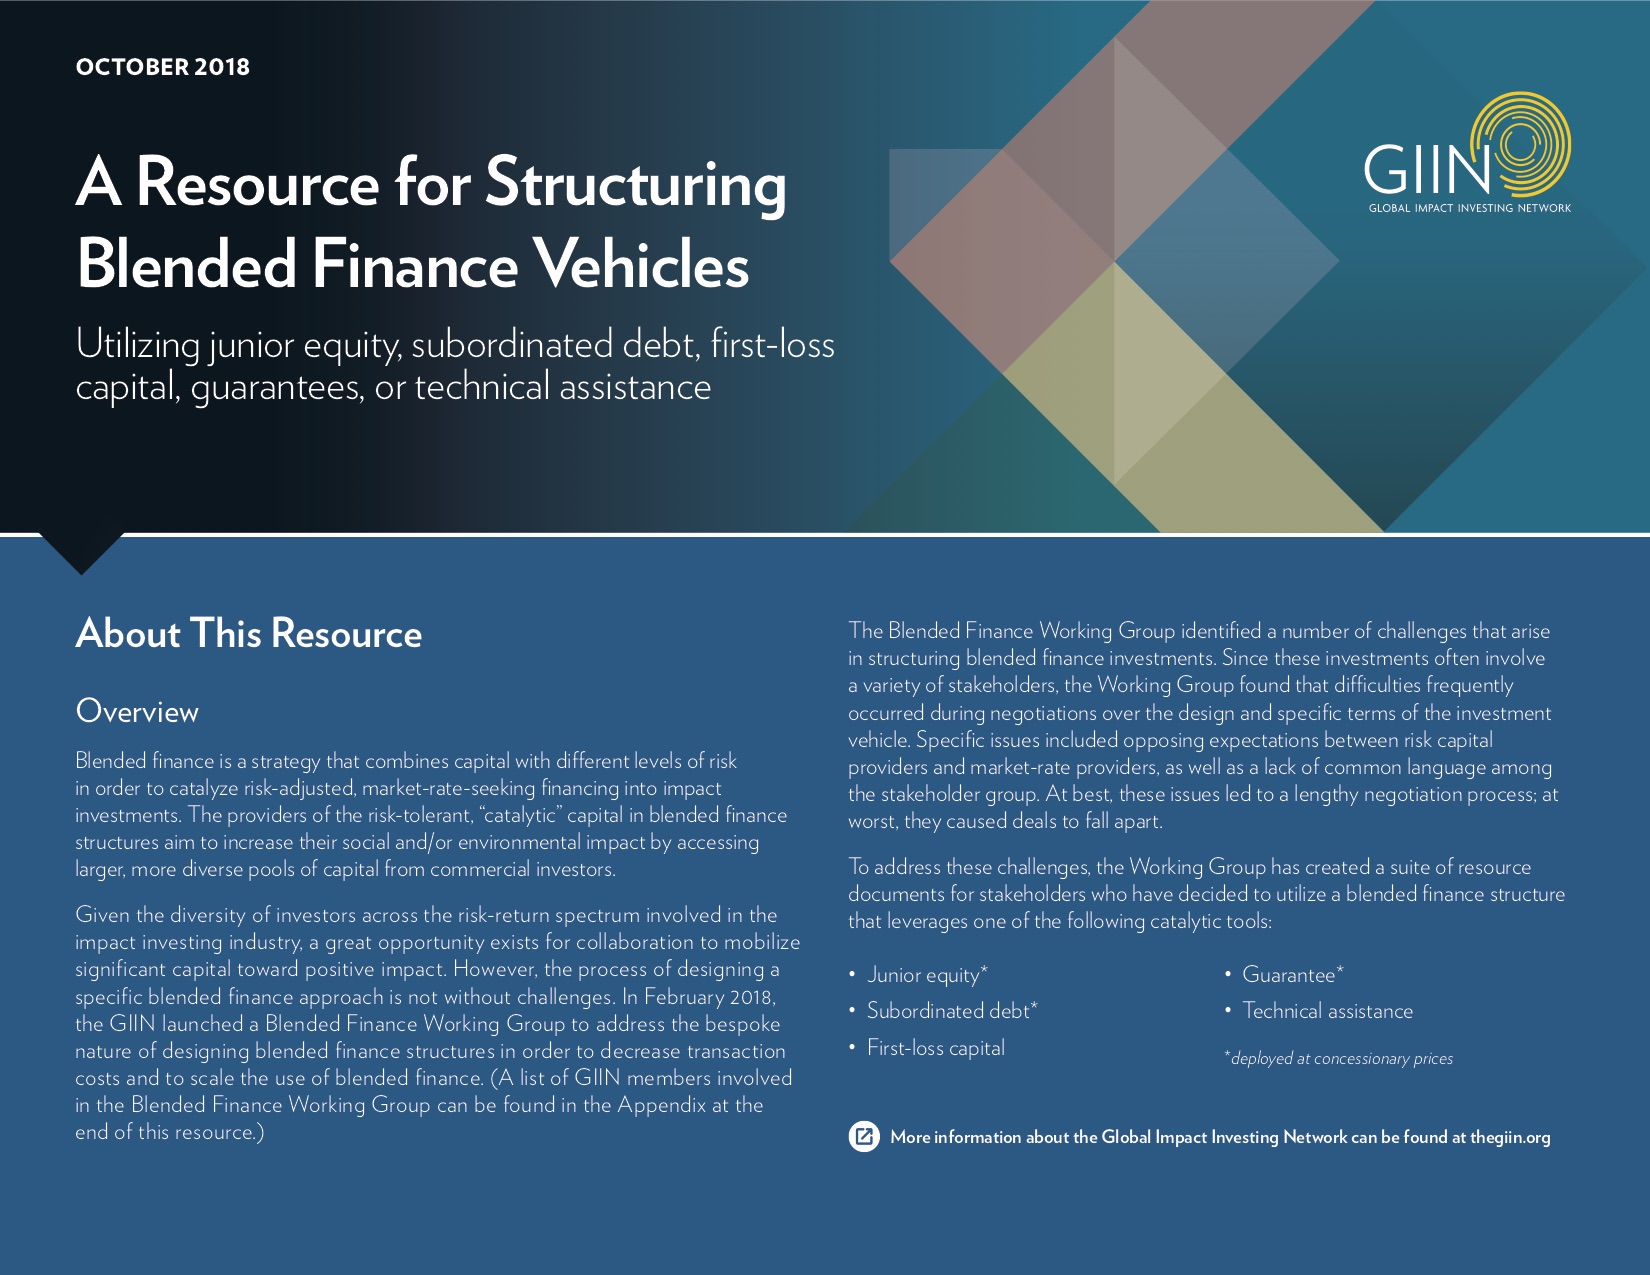 A Resource for Structuring Blended Finance Vehicles